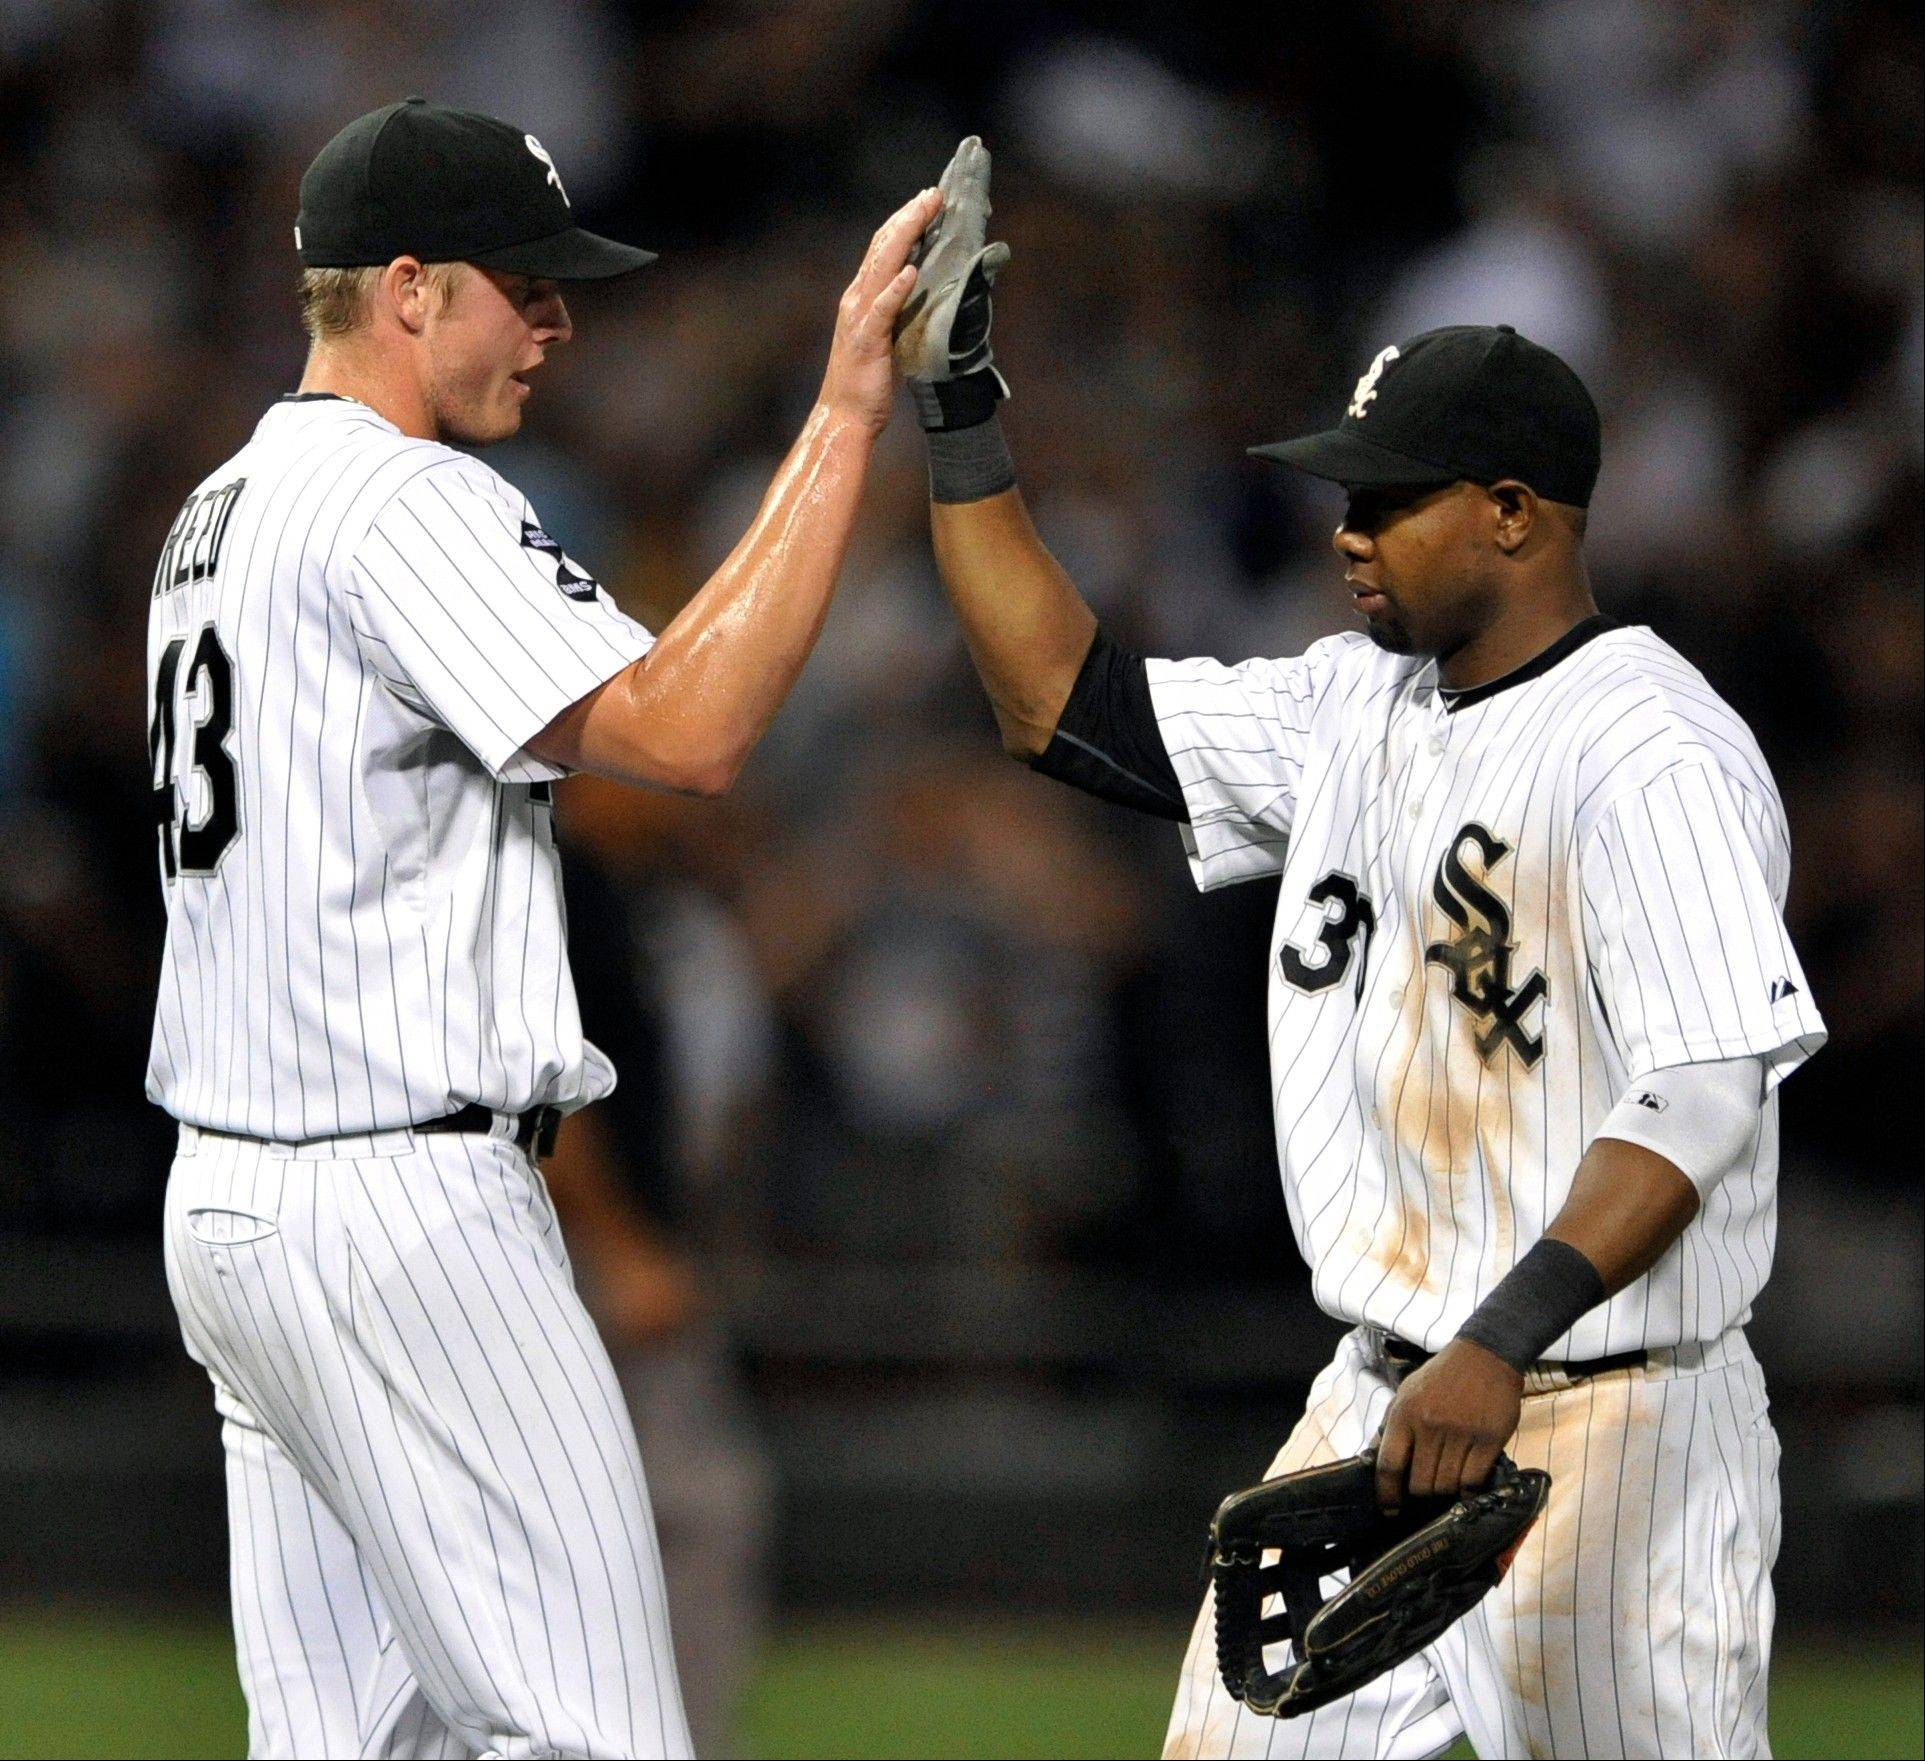 Chicago White Sox closing pitcher Addison Reed, left, celebrates with teammate Alejandro De Aza right, after defeating the Minnesota Twins 4-2 last night back in Chicago after getting swept in Detroit.